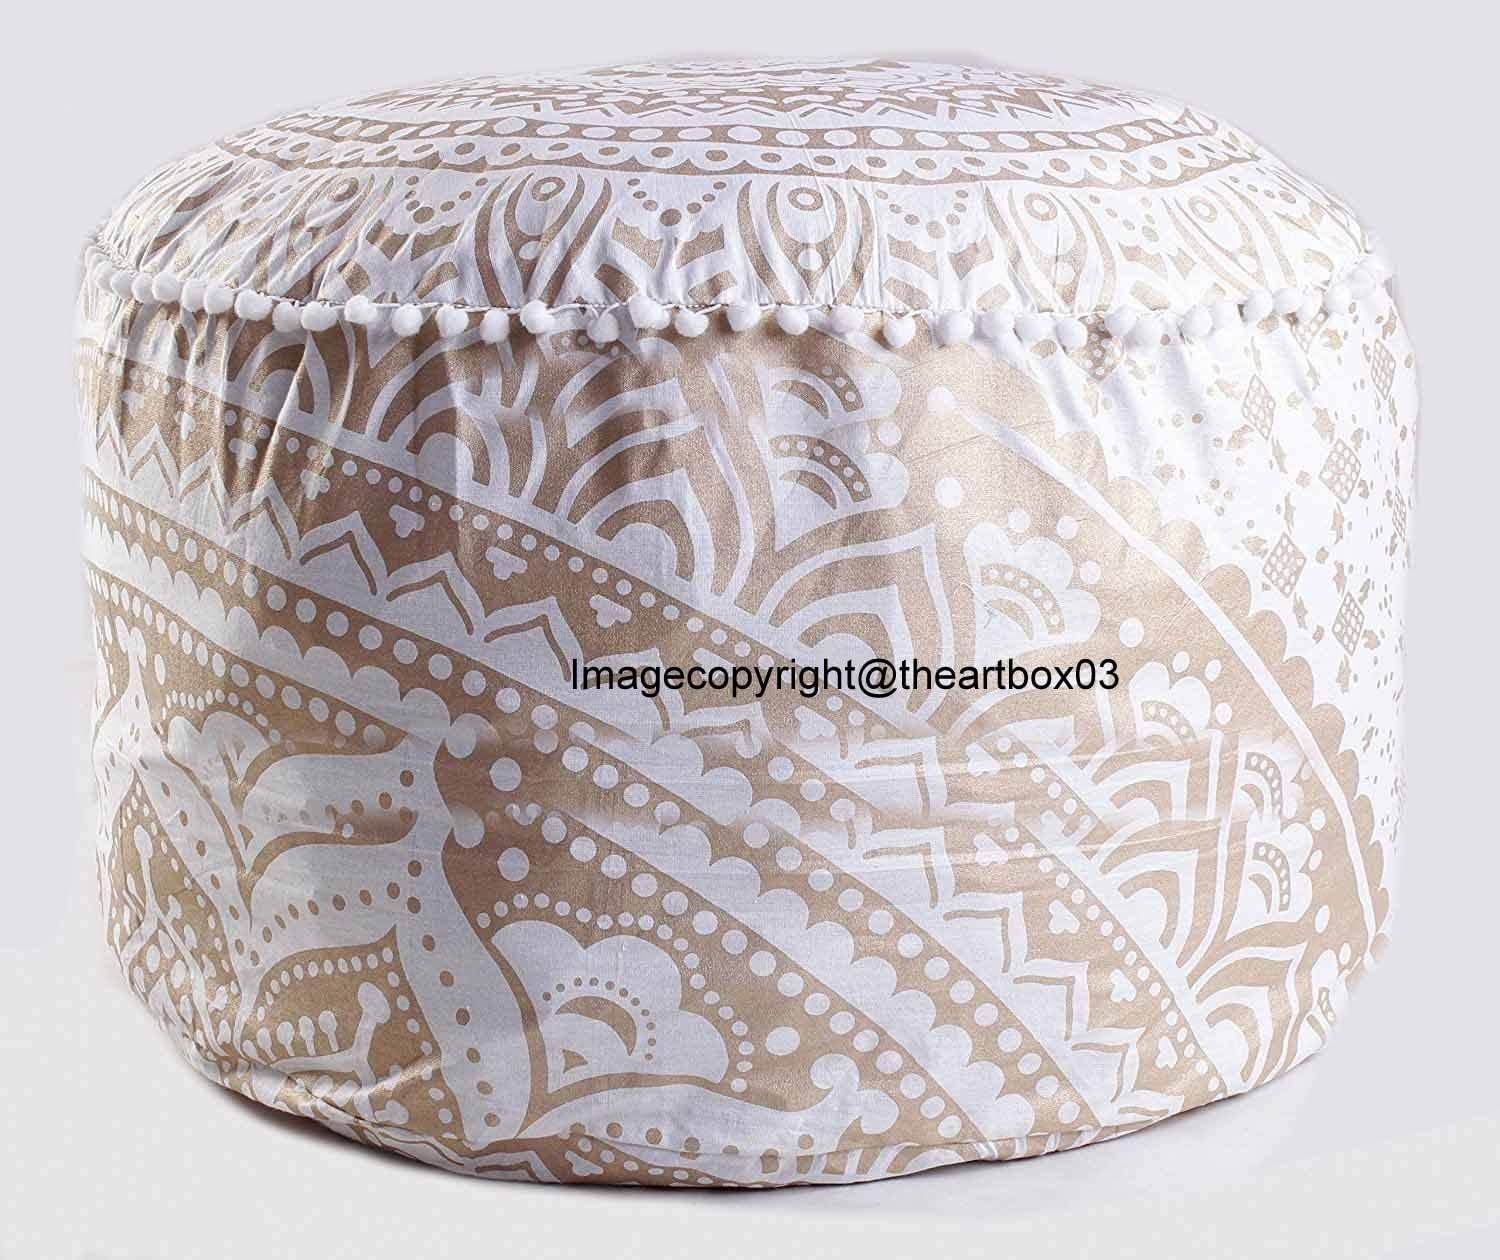 Golden Ombre Mandala Round Seating Pouf Cover, Ottoman Furniture, Storage Ottoman, Living Room Ottoman, Indian Foot Stool Decor 14 x 22